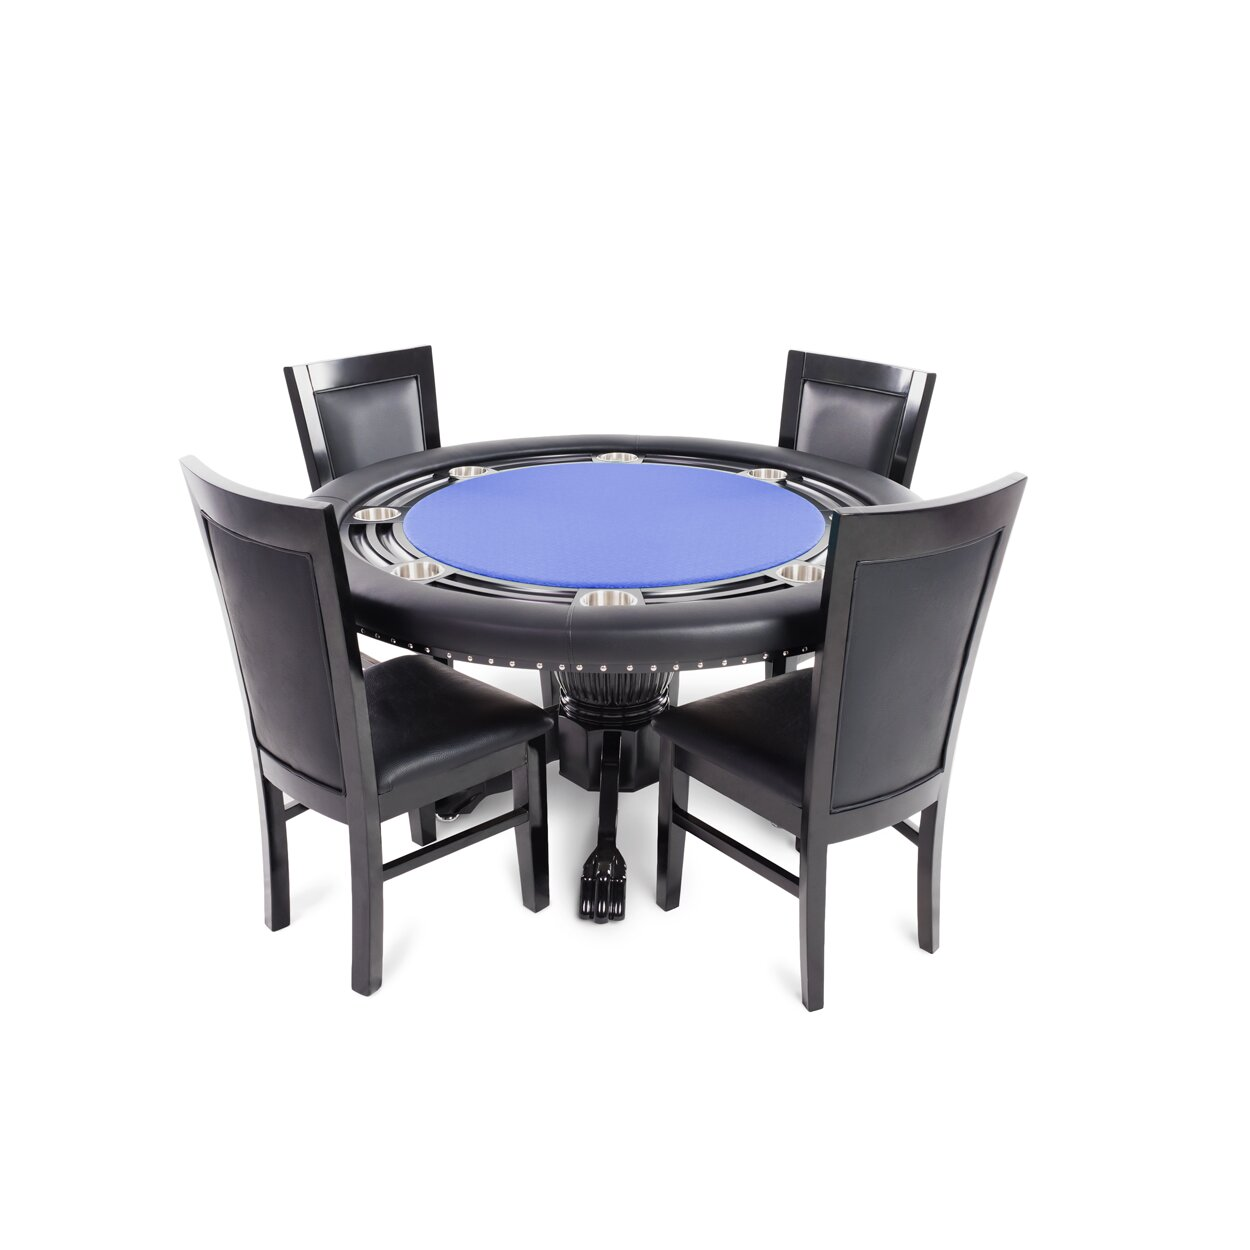 BBO Poker Nighthawk 5 Piece Poker Dining Table Set with